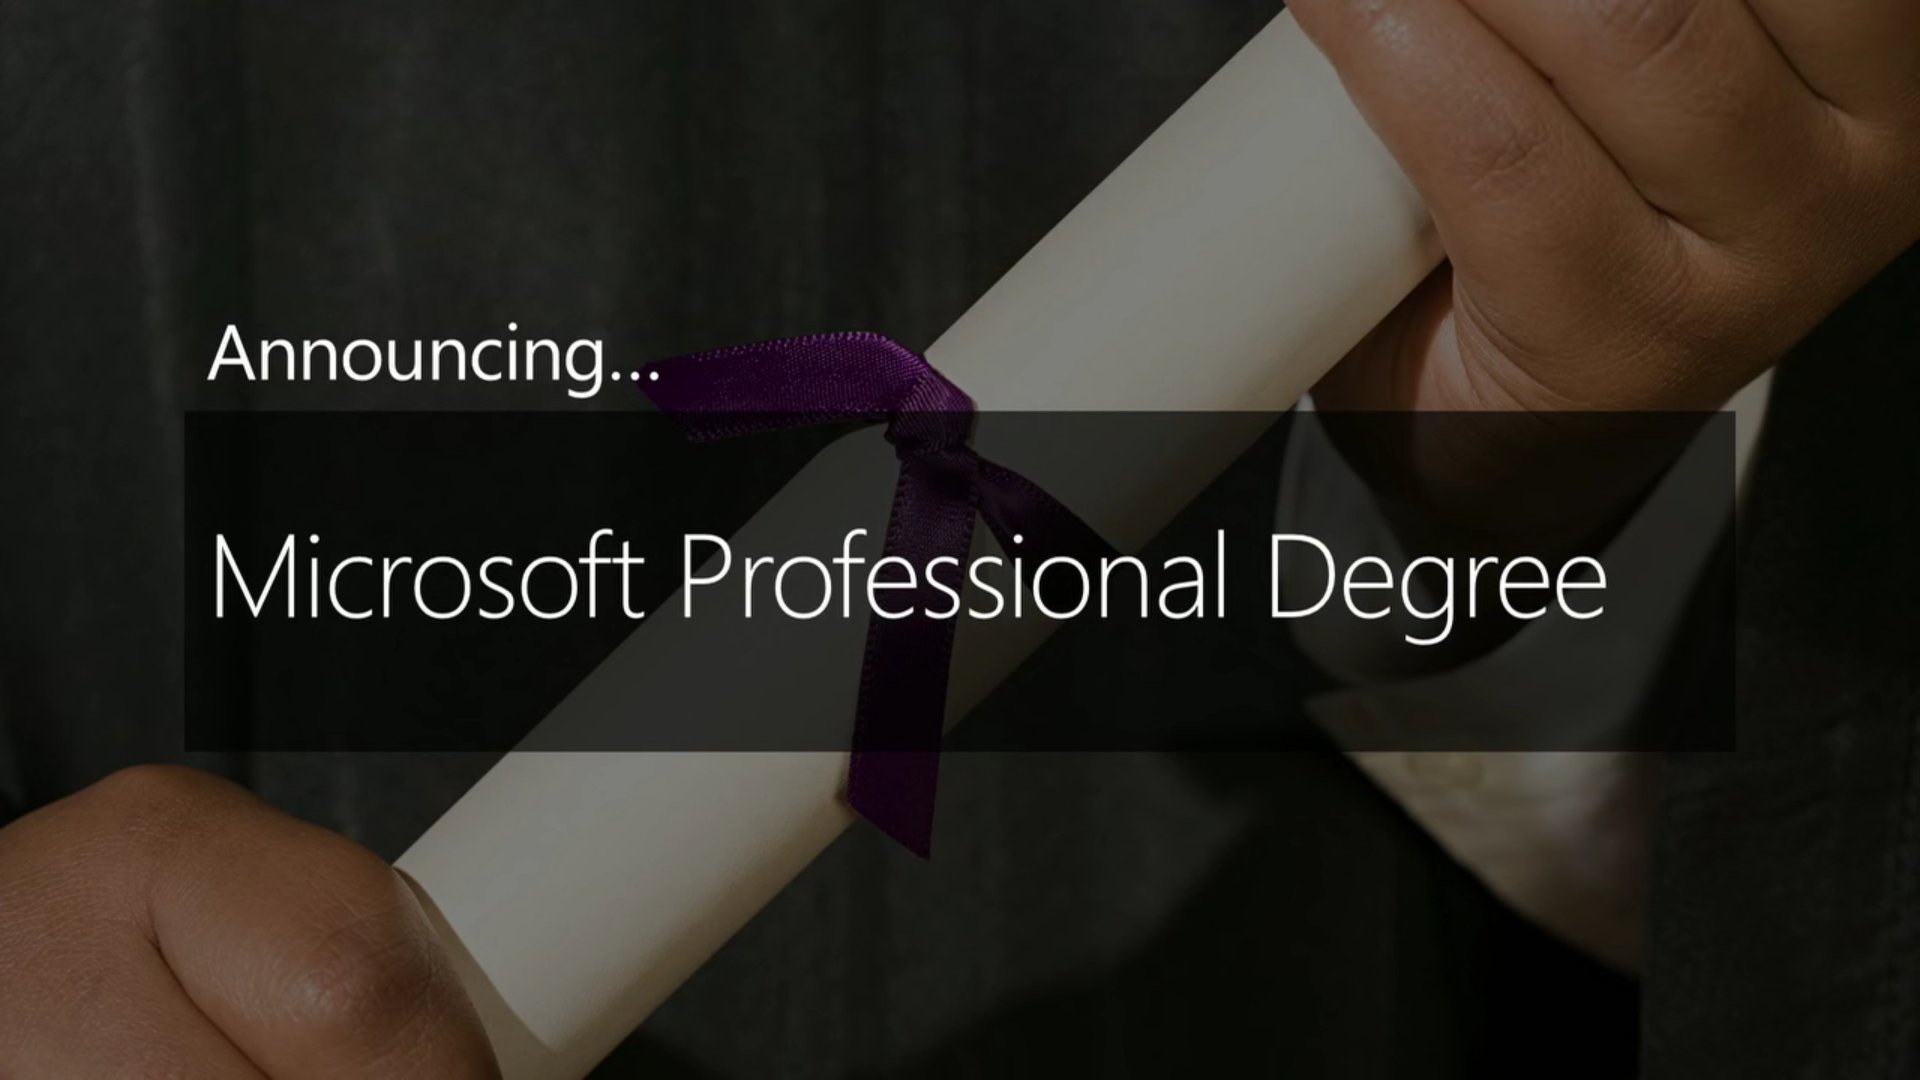 Microsoft Announces New Microsoft Professional Degree